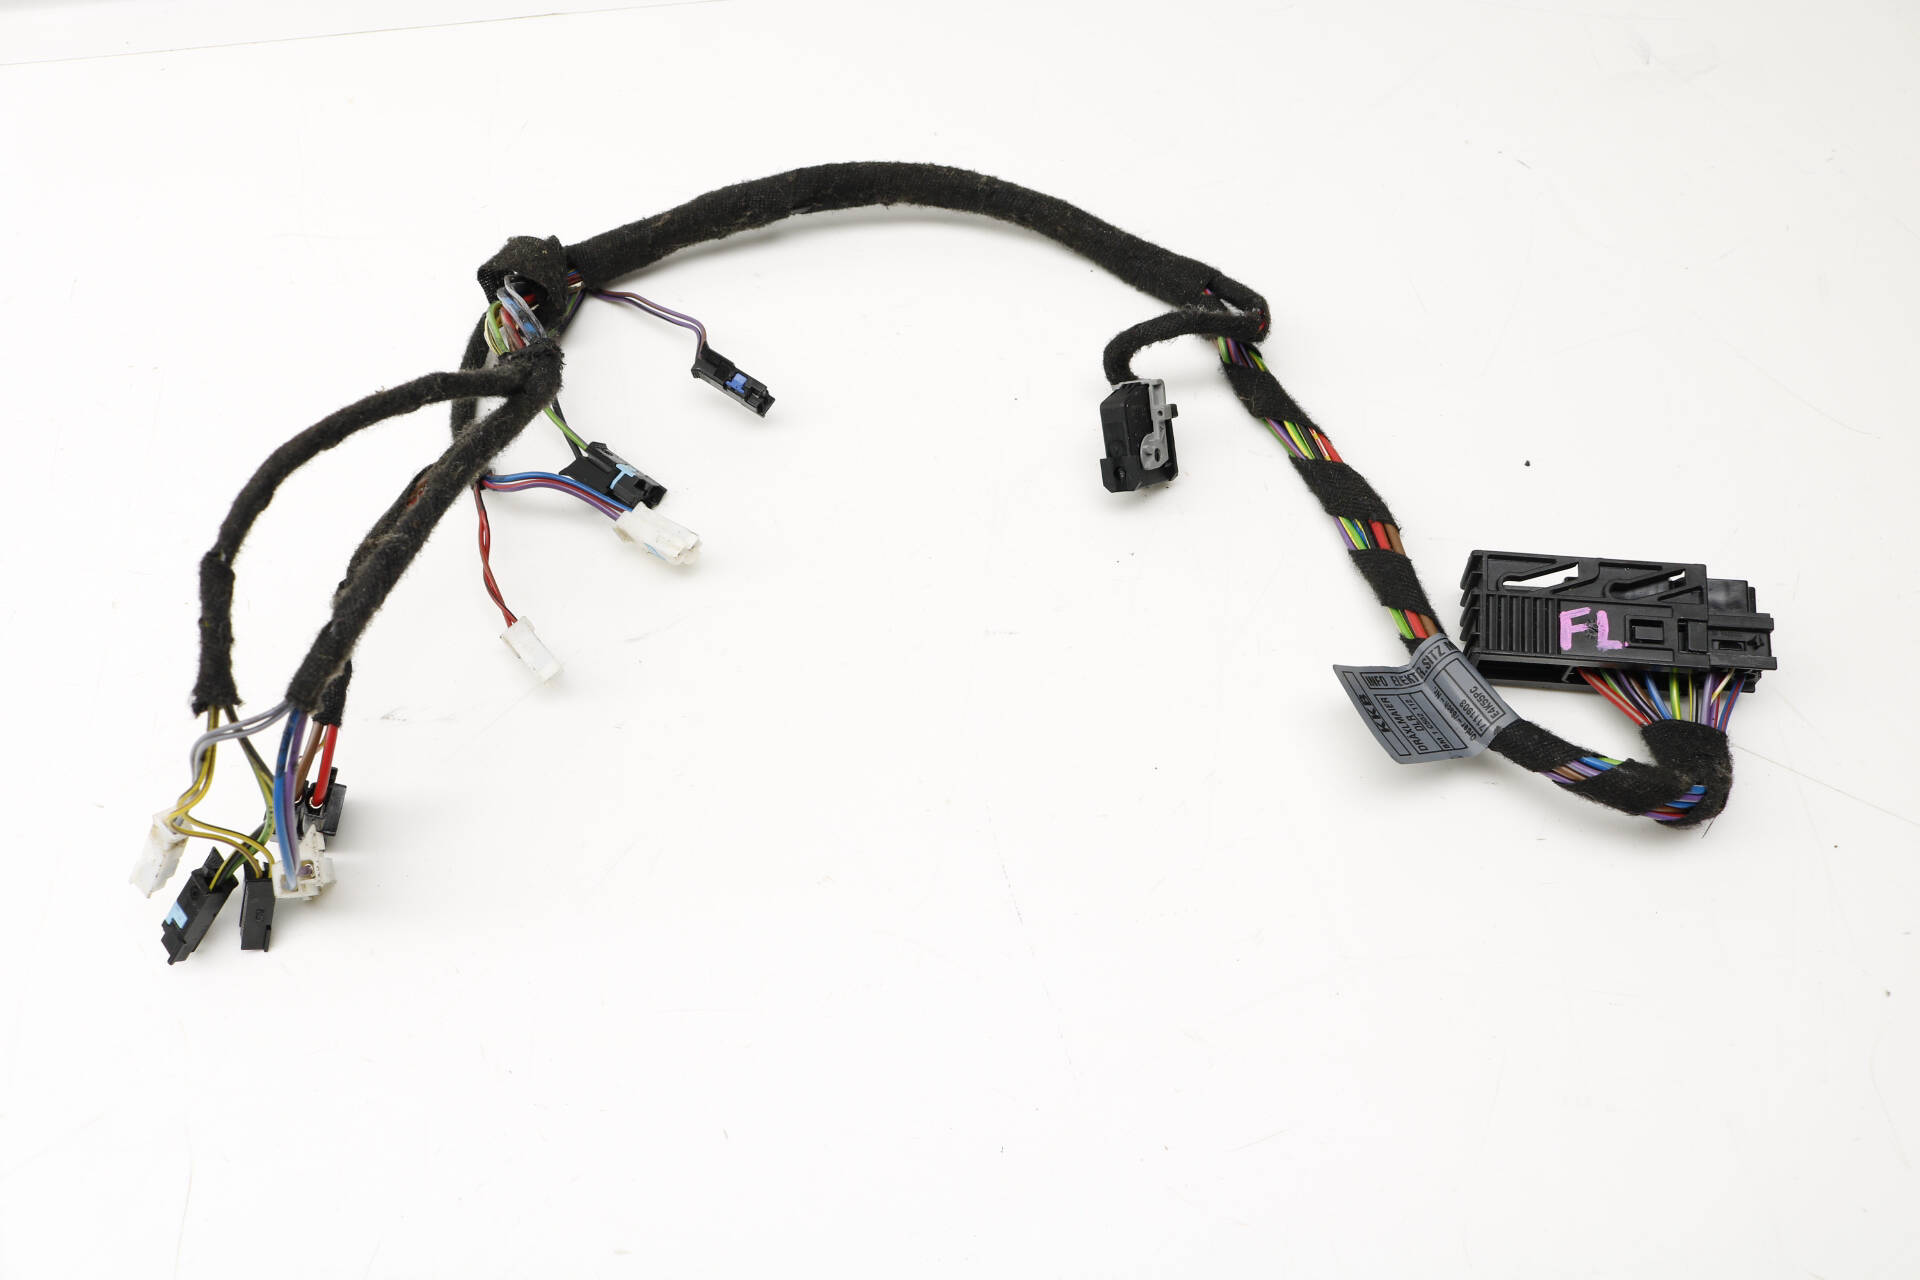 2004 2005 2006 2007 BMW X3 E83 - FRONT LEFT SEAT WIRING HARNESS | eBay | 2004 Bmw X3 Wiring Harness |  | eBay